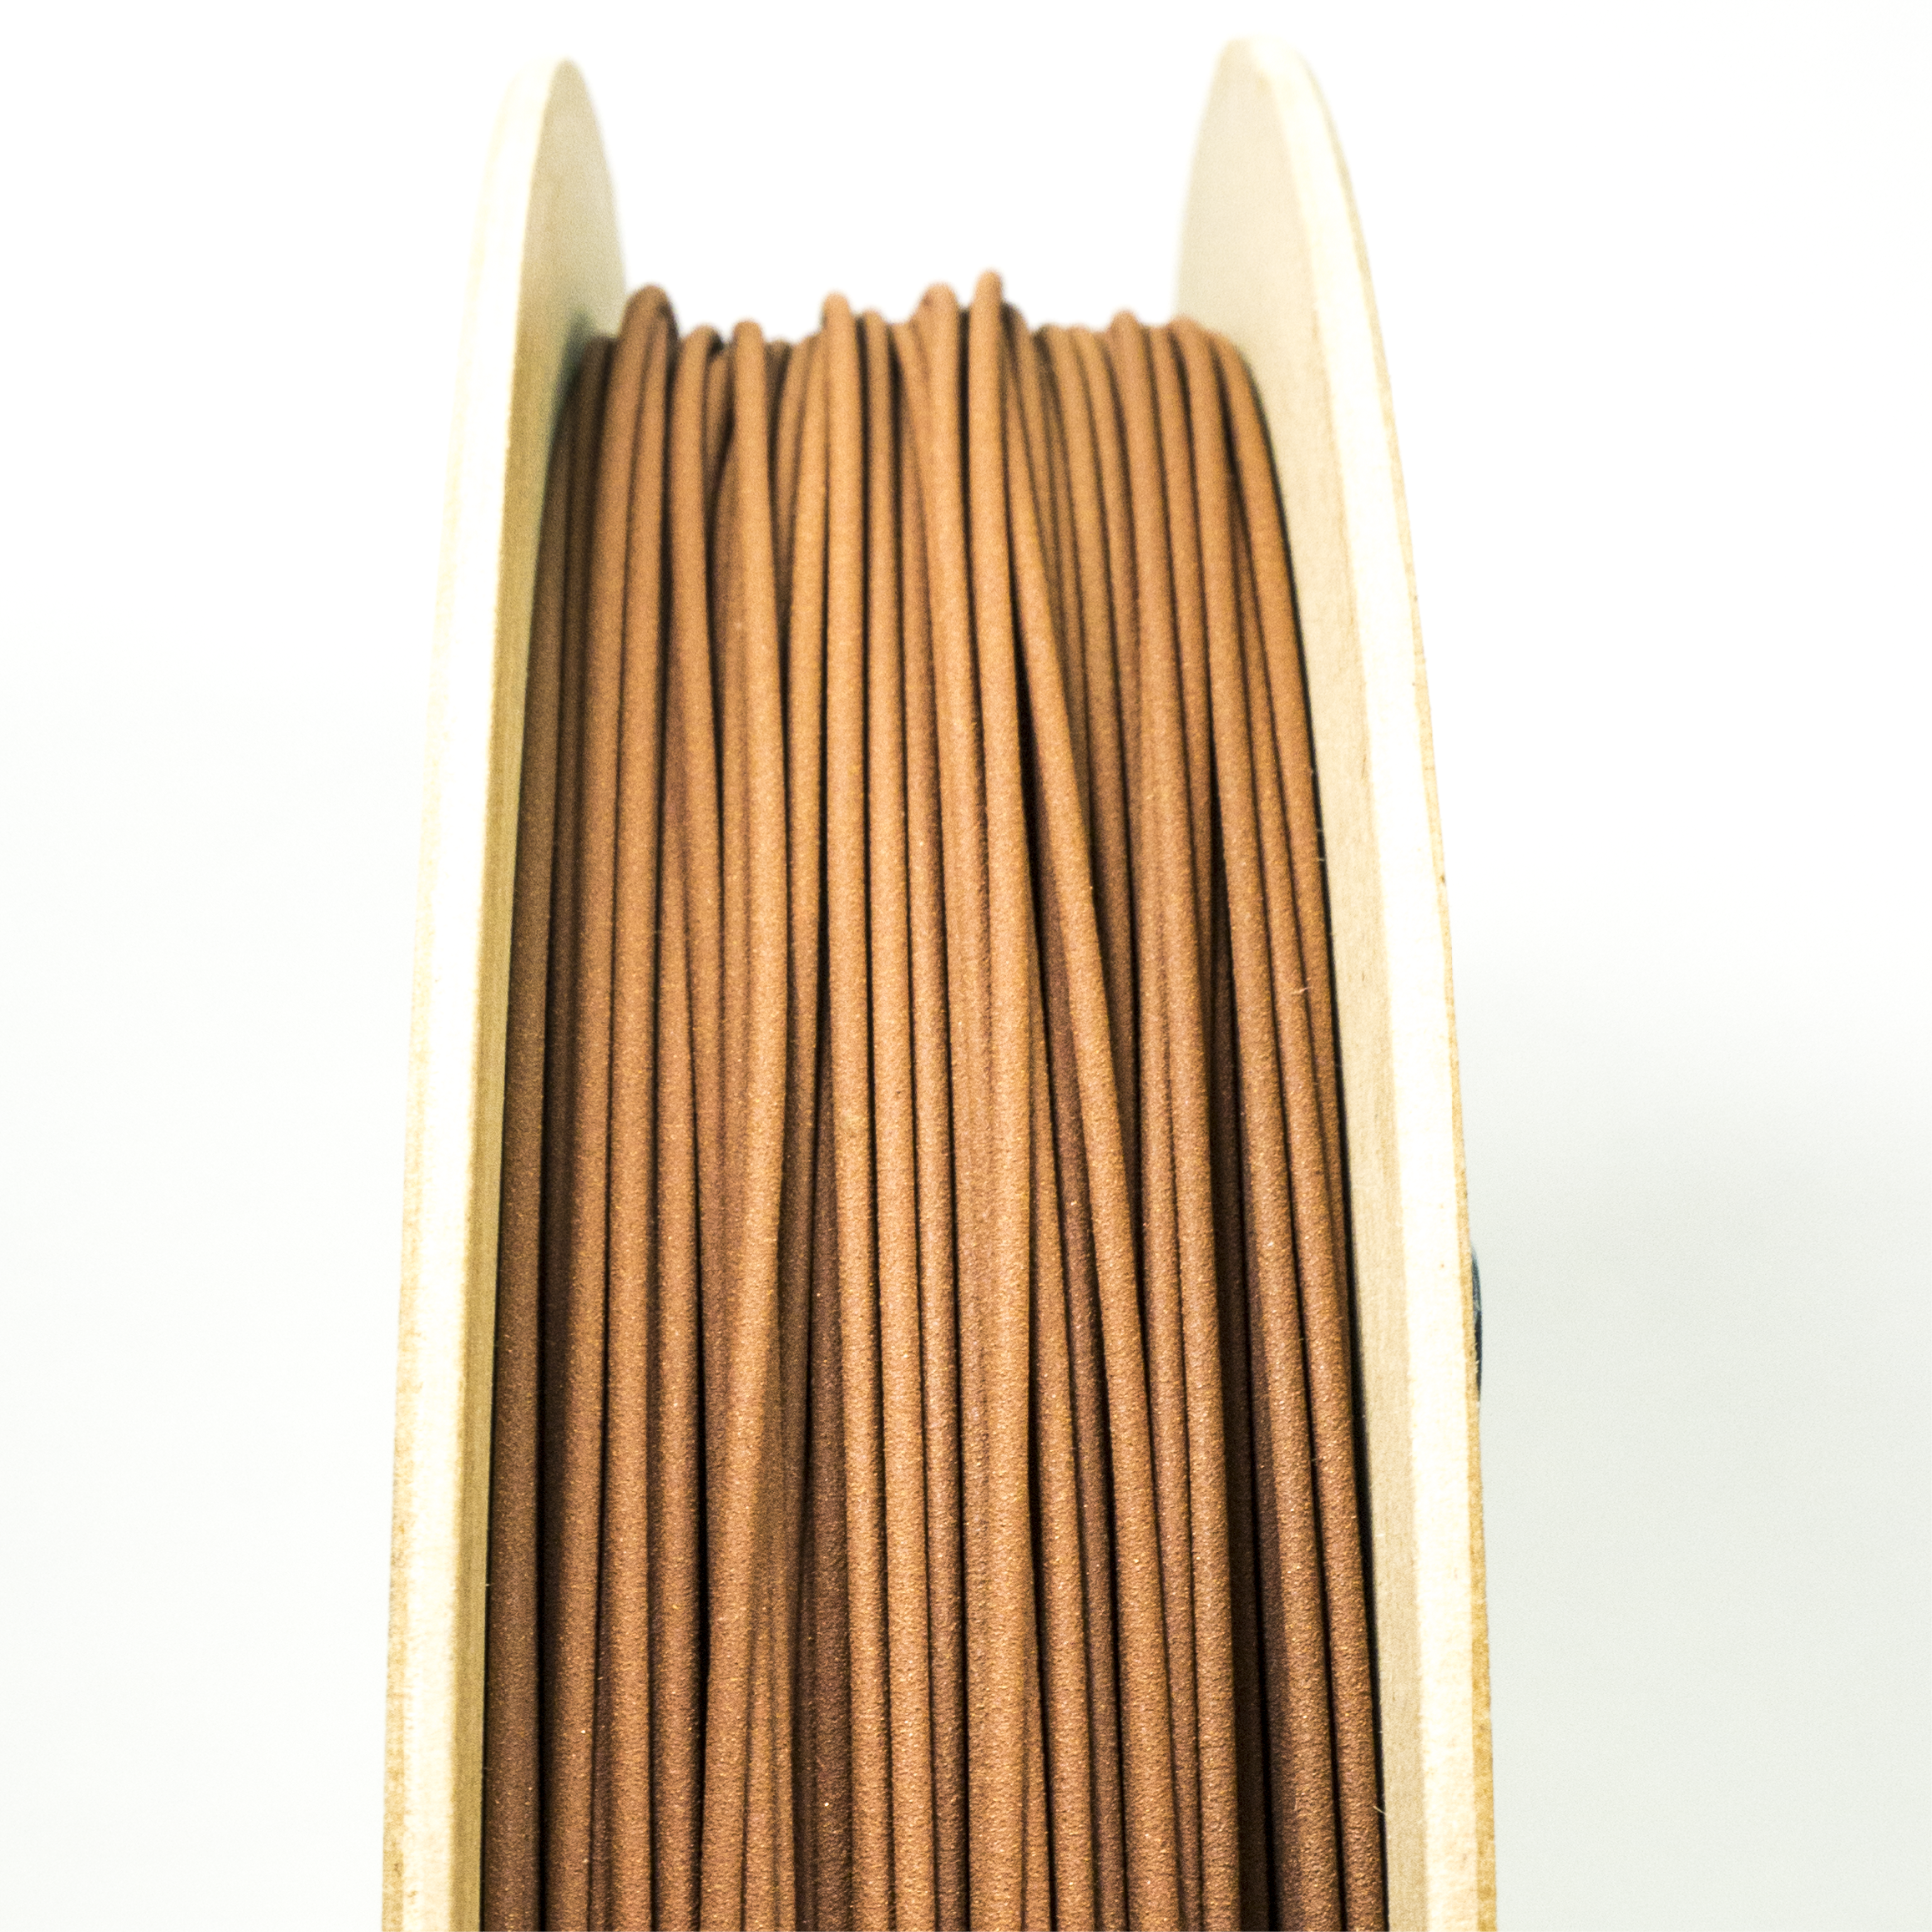 Copper Filament - Copper Filamet™ contains around 90% metal. Filamet™ enables any Fused Filament Fabrication printer to produce metal objects. Once fired in a kiln, the result is 100% metal.